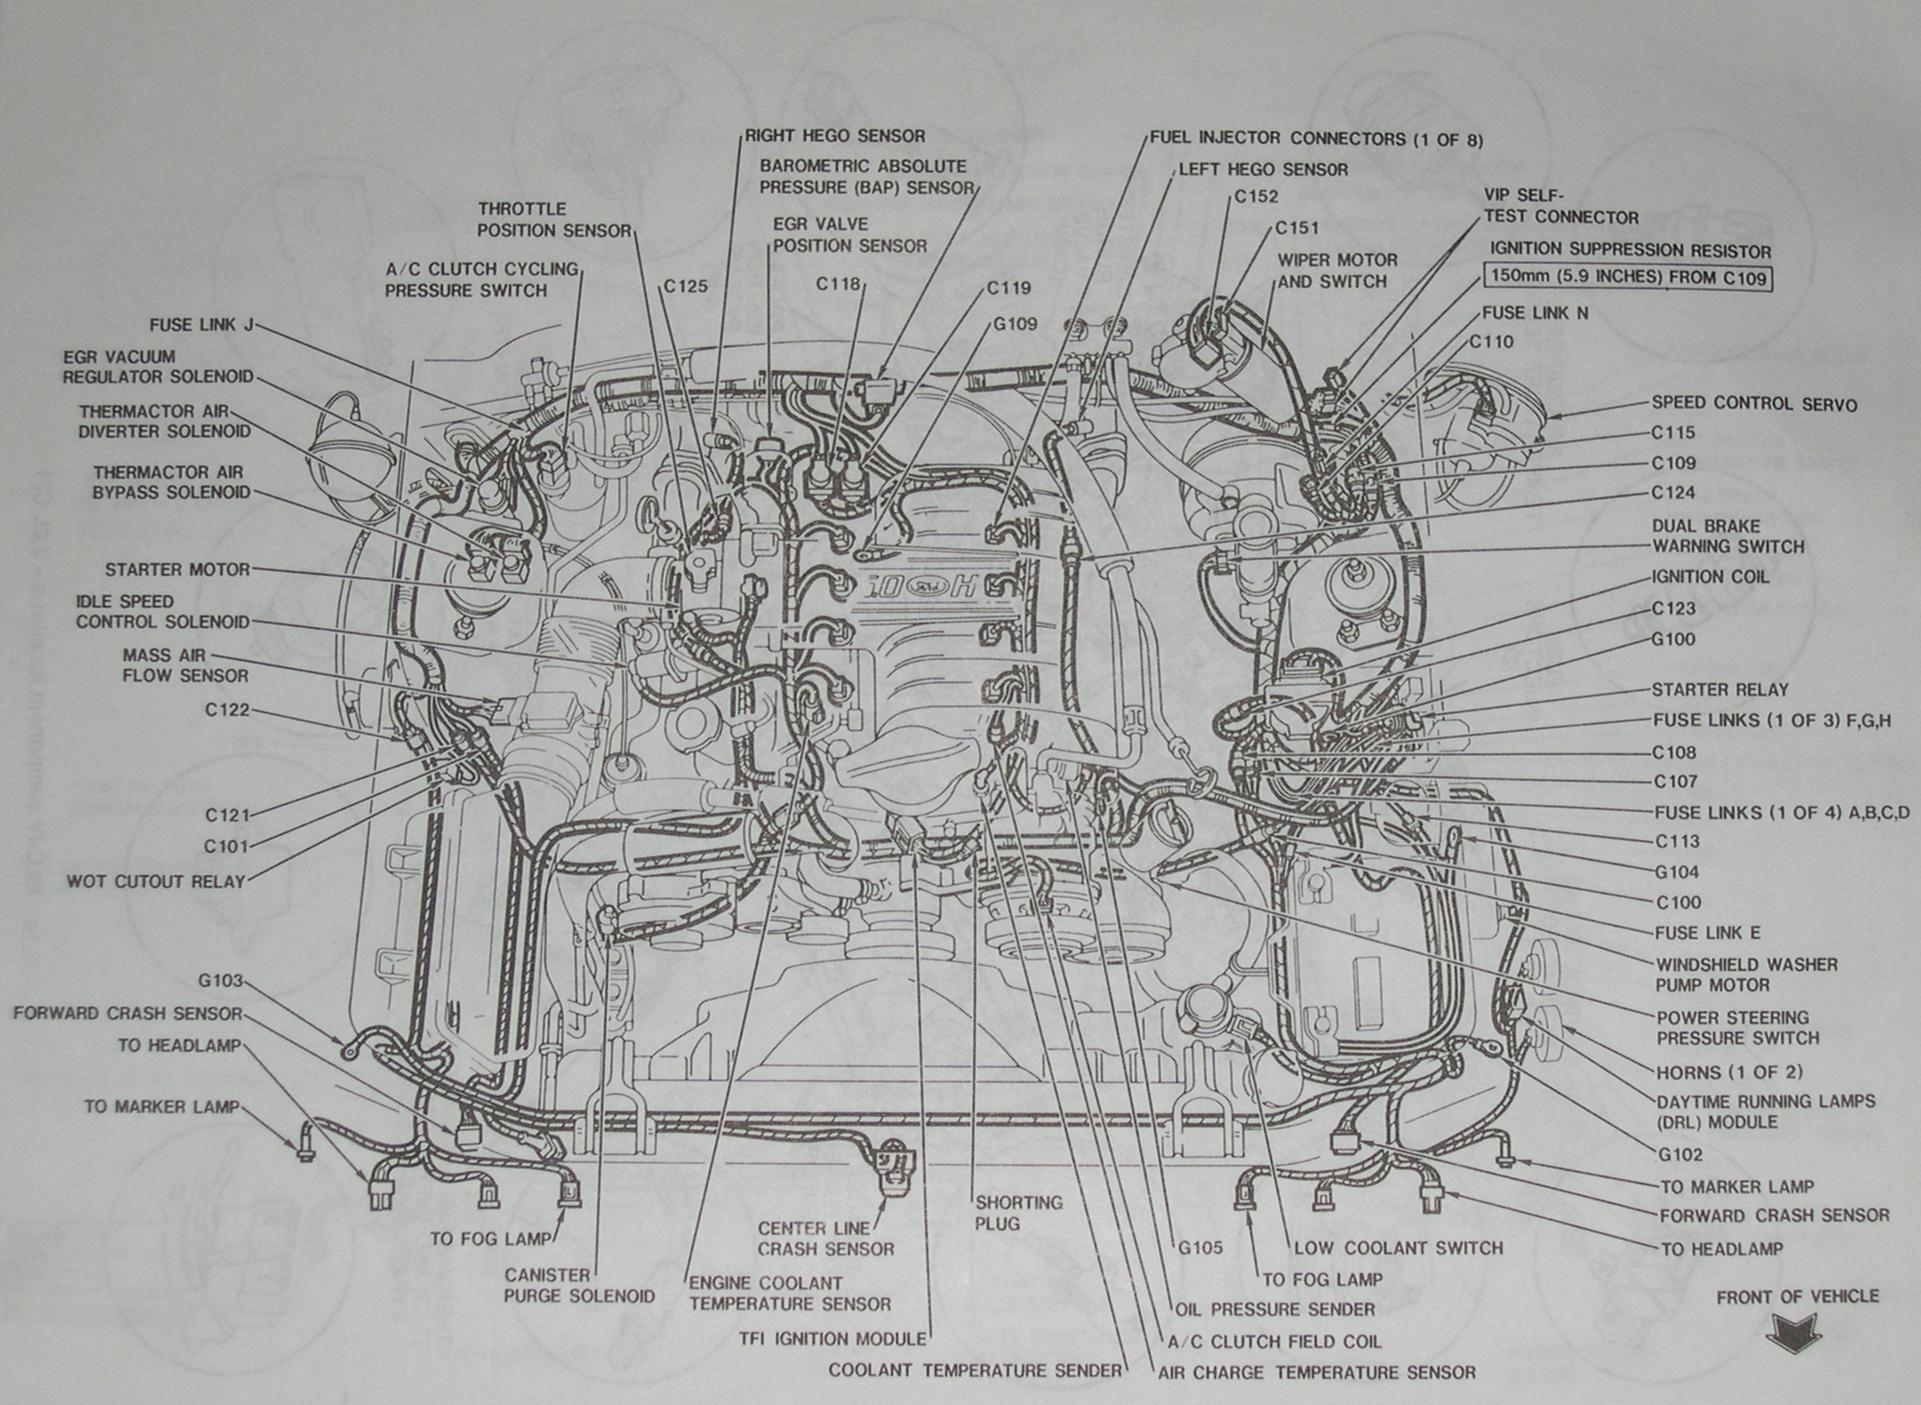 94 95 engine bay diagram mustang fuse wiring diagrams 94 95 engine bay diagram